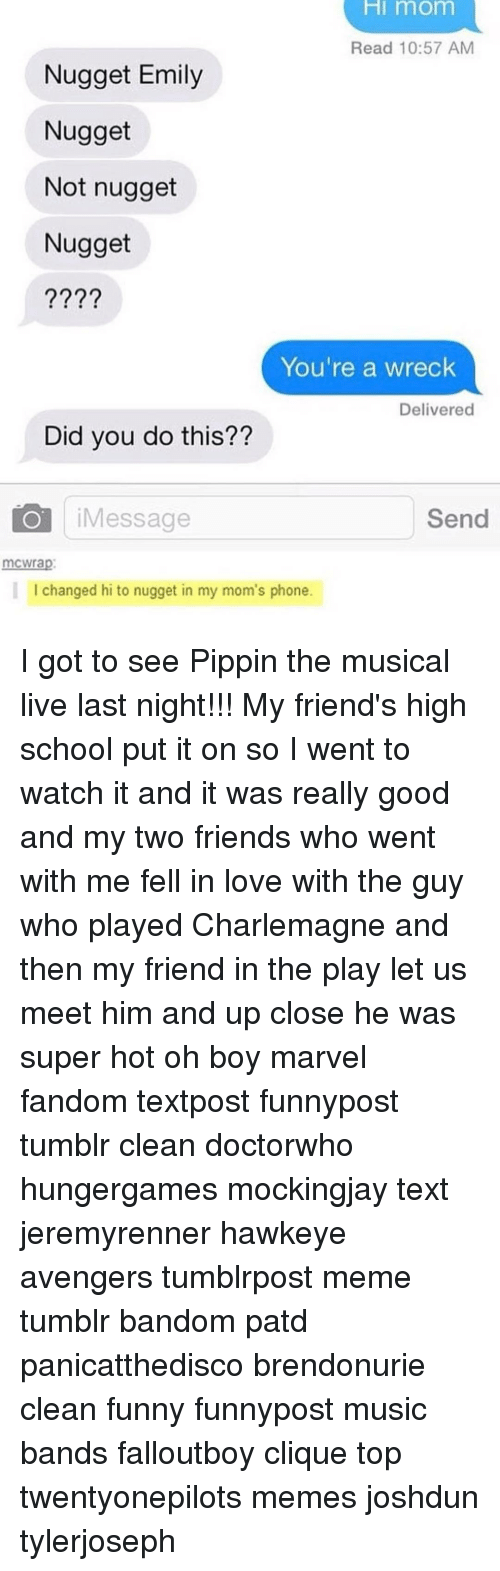 Memes, Pippin, and The Play: HI mom  Read 10:57 AM  Nugget Emily  Nugget  Not nugget  Nugget  You're a wreck  Delivered  Did you do this??  Send  Message  mCWrap  I changed hi to nugget in my mom's phone. I got to see Pippin the musical live last night!!! My friend's high school put it on so I went to watch it and it was really good and my two friends who went with me fell in love with the guy who played Charlemagne and then my friend in the play let us meet him and up close he was super hot oh boy marvel fandom textpost funnypost tumblr clean doctorwho hungergames mockingjay text jeremyrenner hawkeye avengers tumblrpost meme tumblr bandom patd panicatthedisco brendonurie clean funny funnypost music bands falloutboy clique top twentyonepilots memes joshdun tylerjoseph